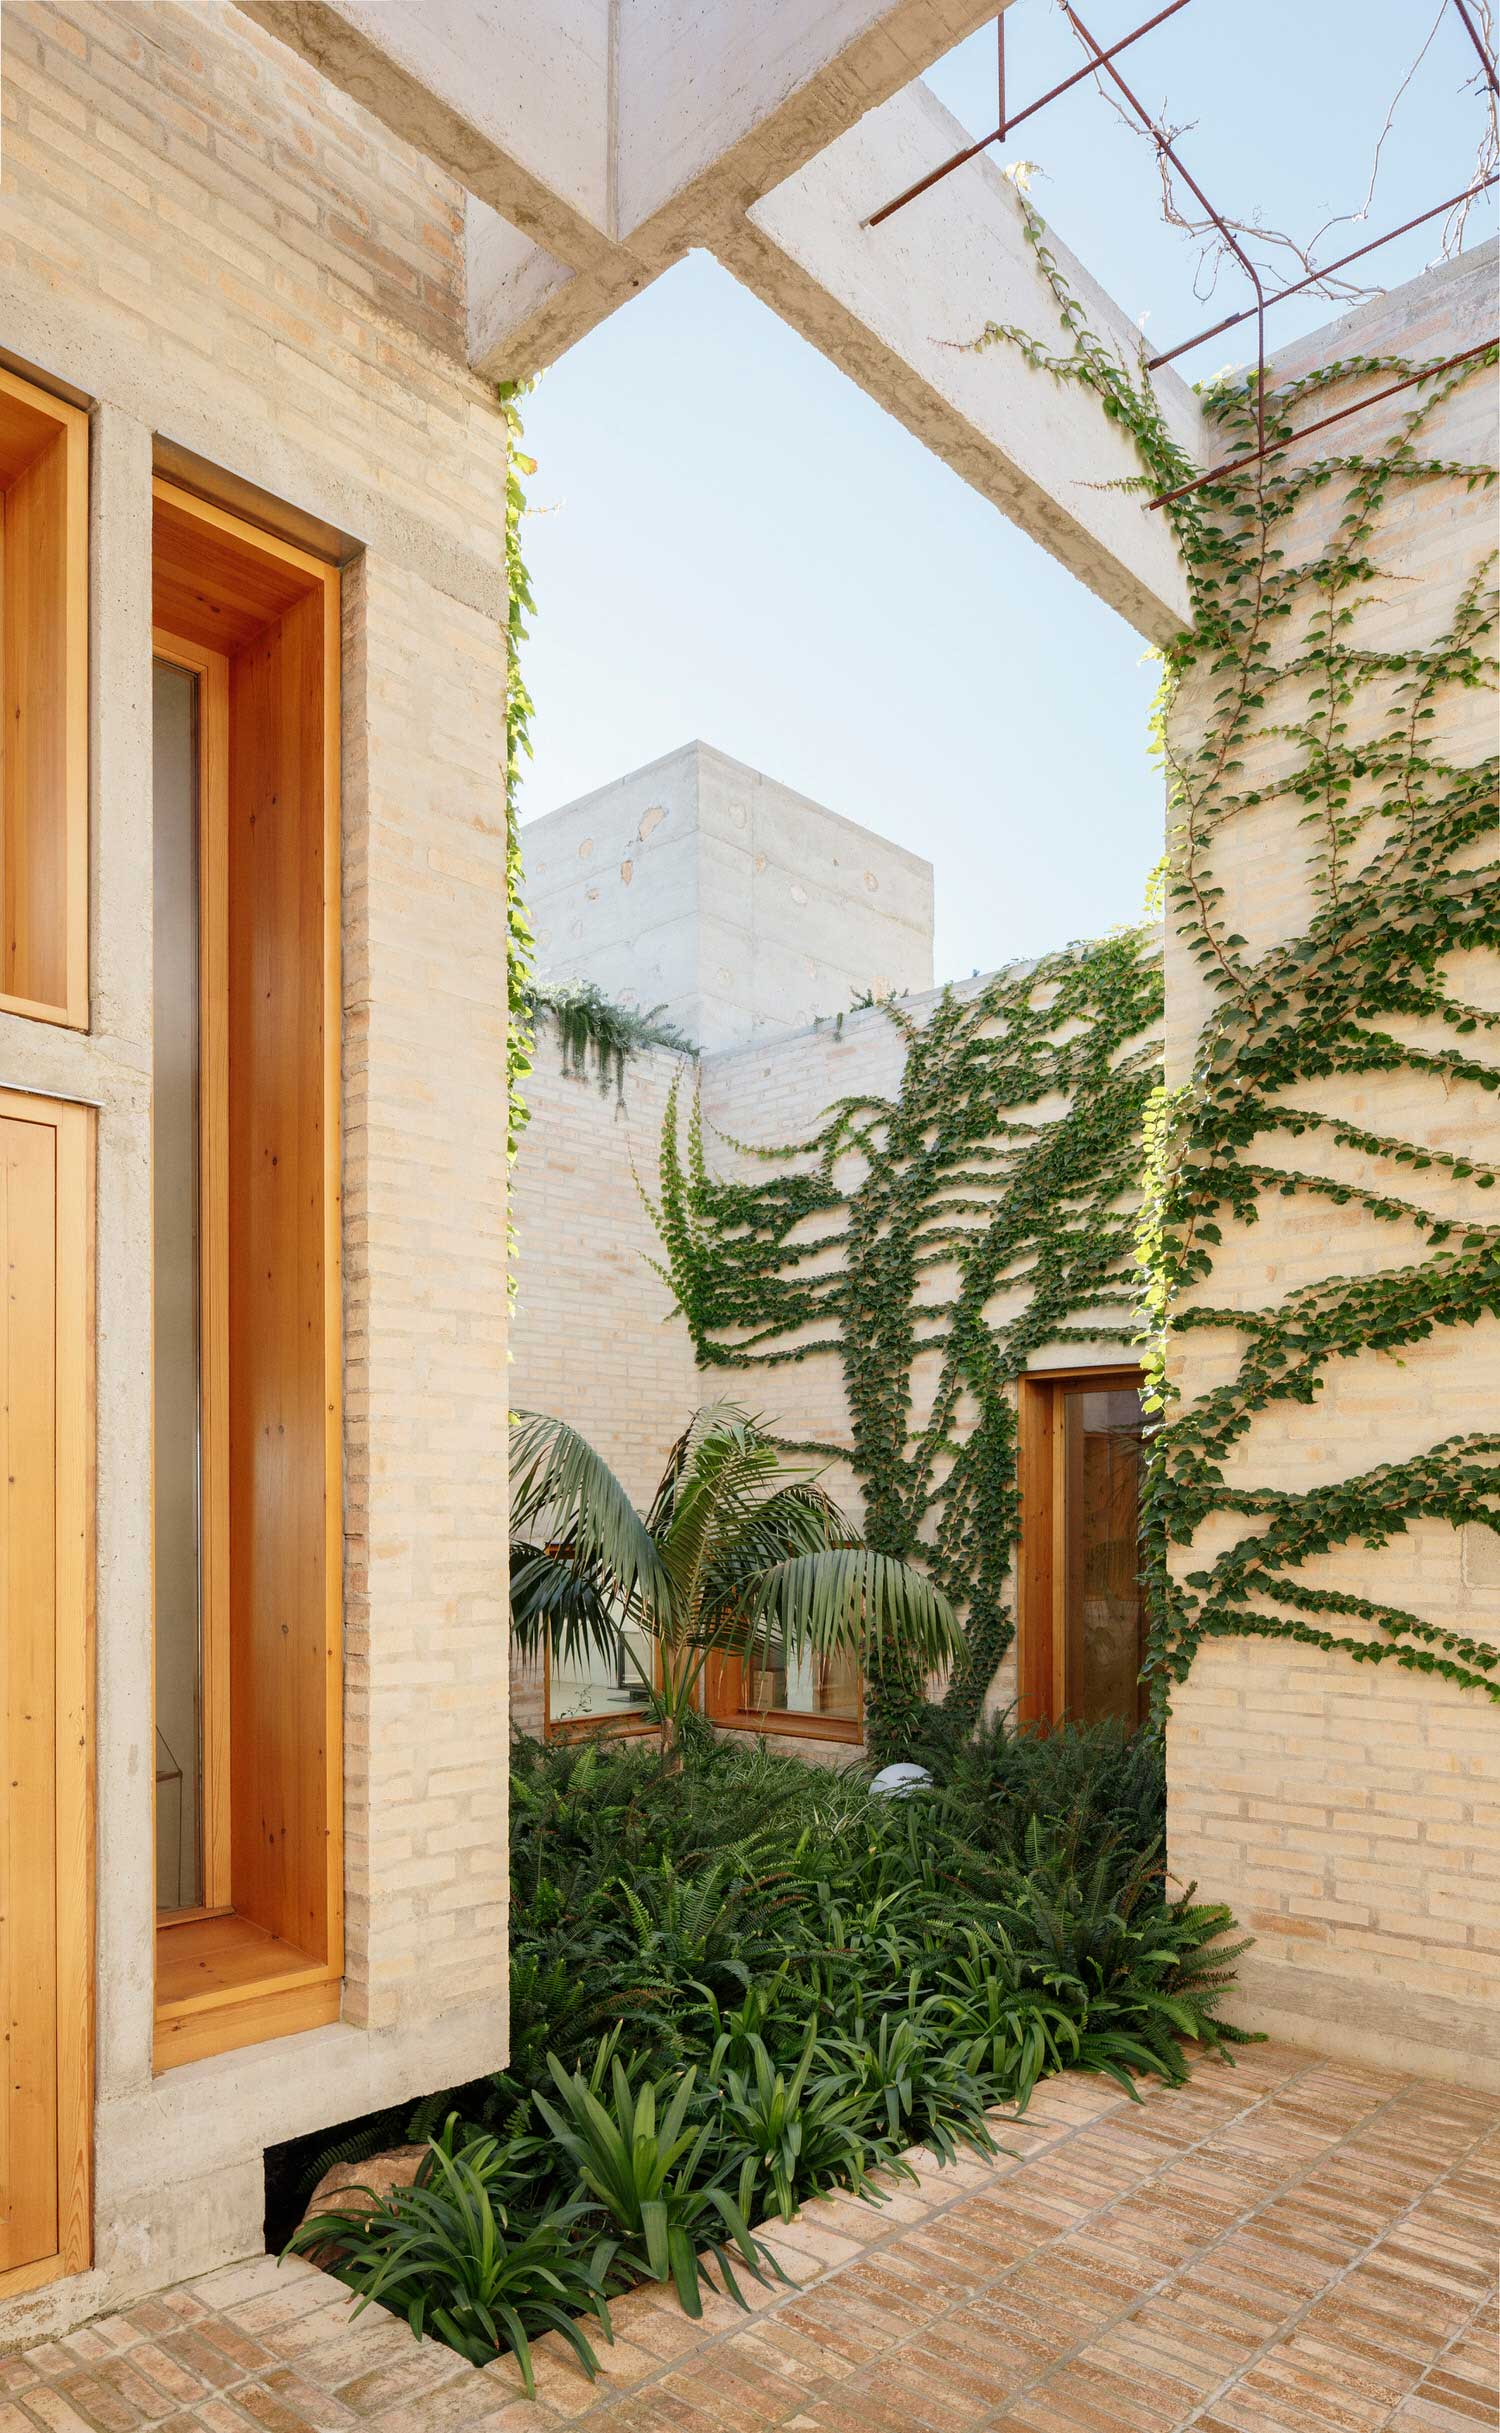 Courtyard House Reinvented: Can Jaime i n' Isabelle in Palma, Mallorca by TedA Arquitectes.